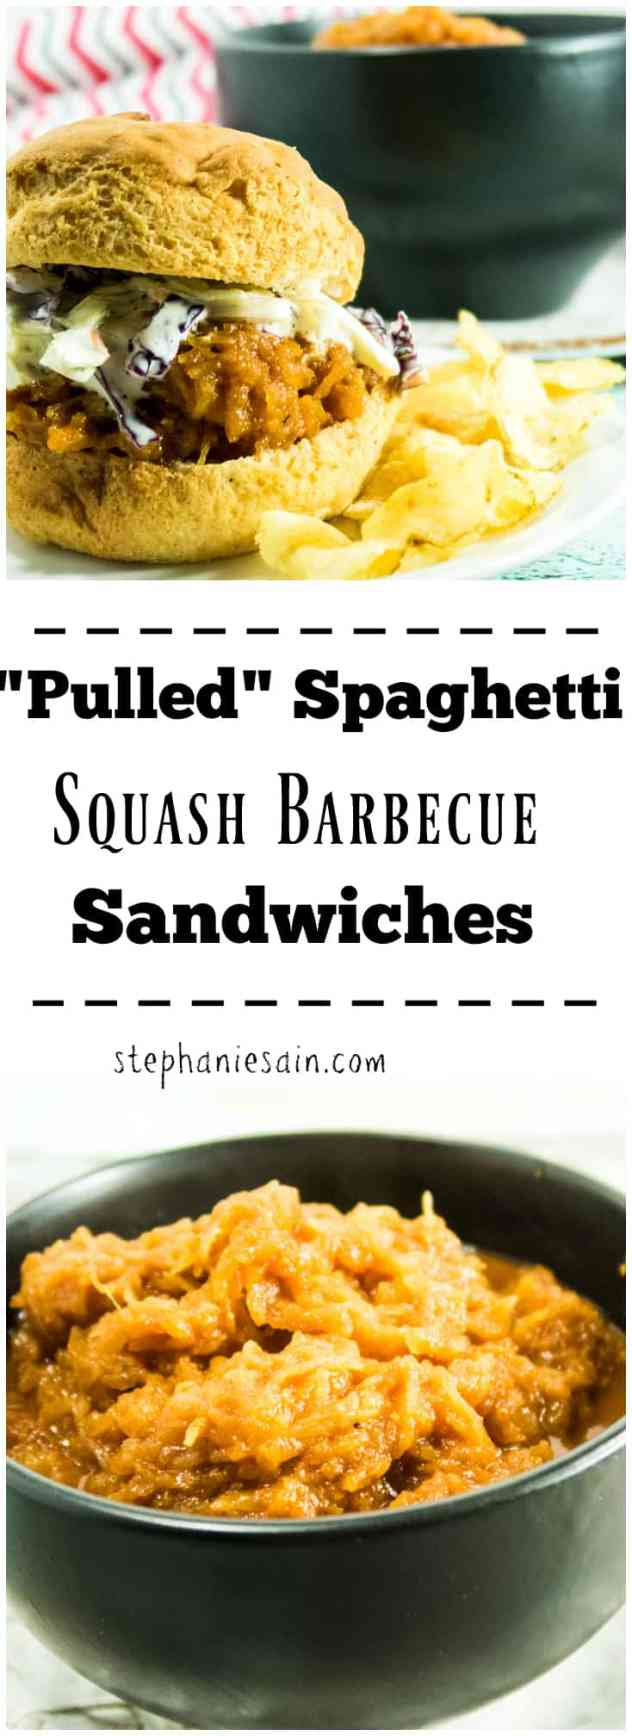 """Pulled"" Spaghetti Squash Barbecue Sandwiches are a tasty, vegetarian or vegan option for your next cookout. Slow cooked with homemade BBQ sauce and served with your favorite toppings. Gluten free, Vegetarian, and Vegan option."